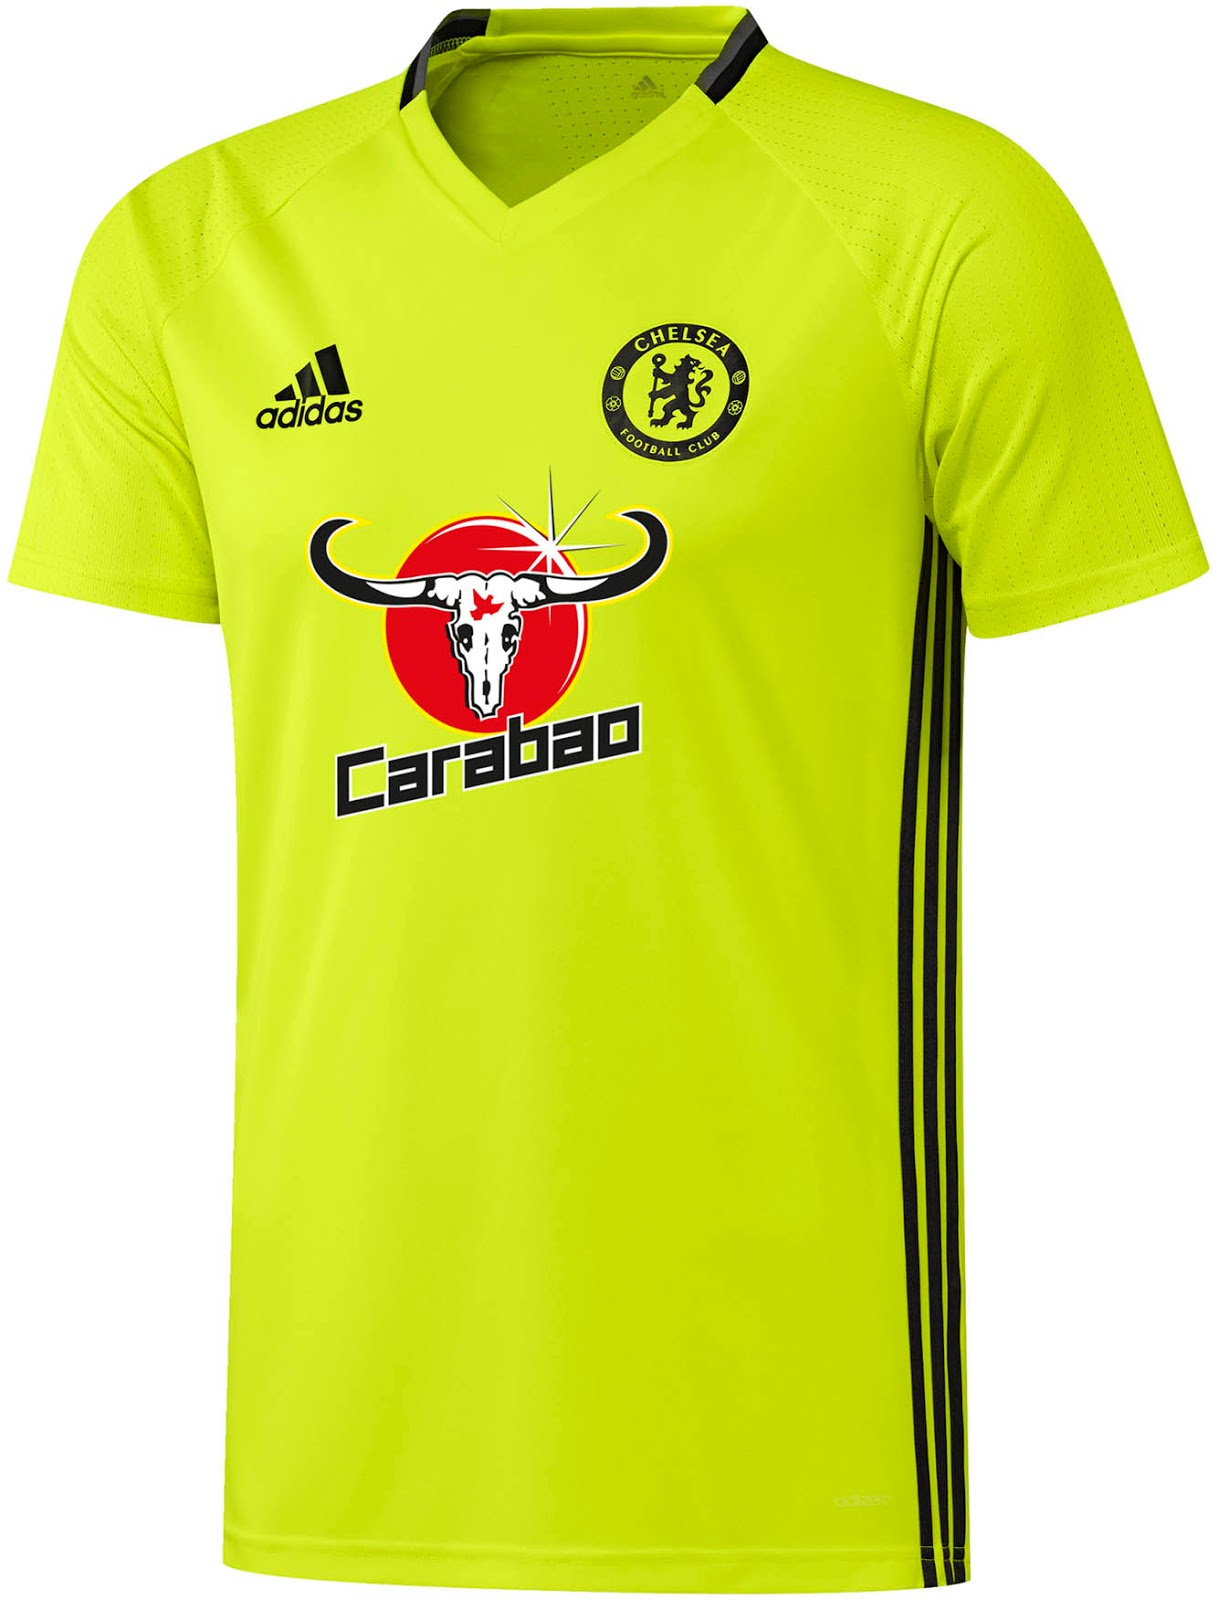 reputable site a3cb8 dde37 chelsea training jersey on sale > OFF38% Discounts